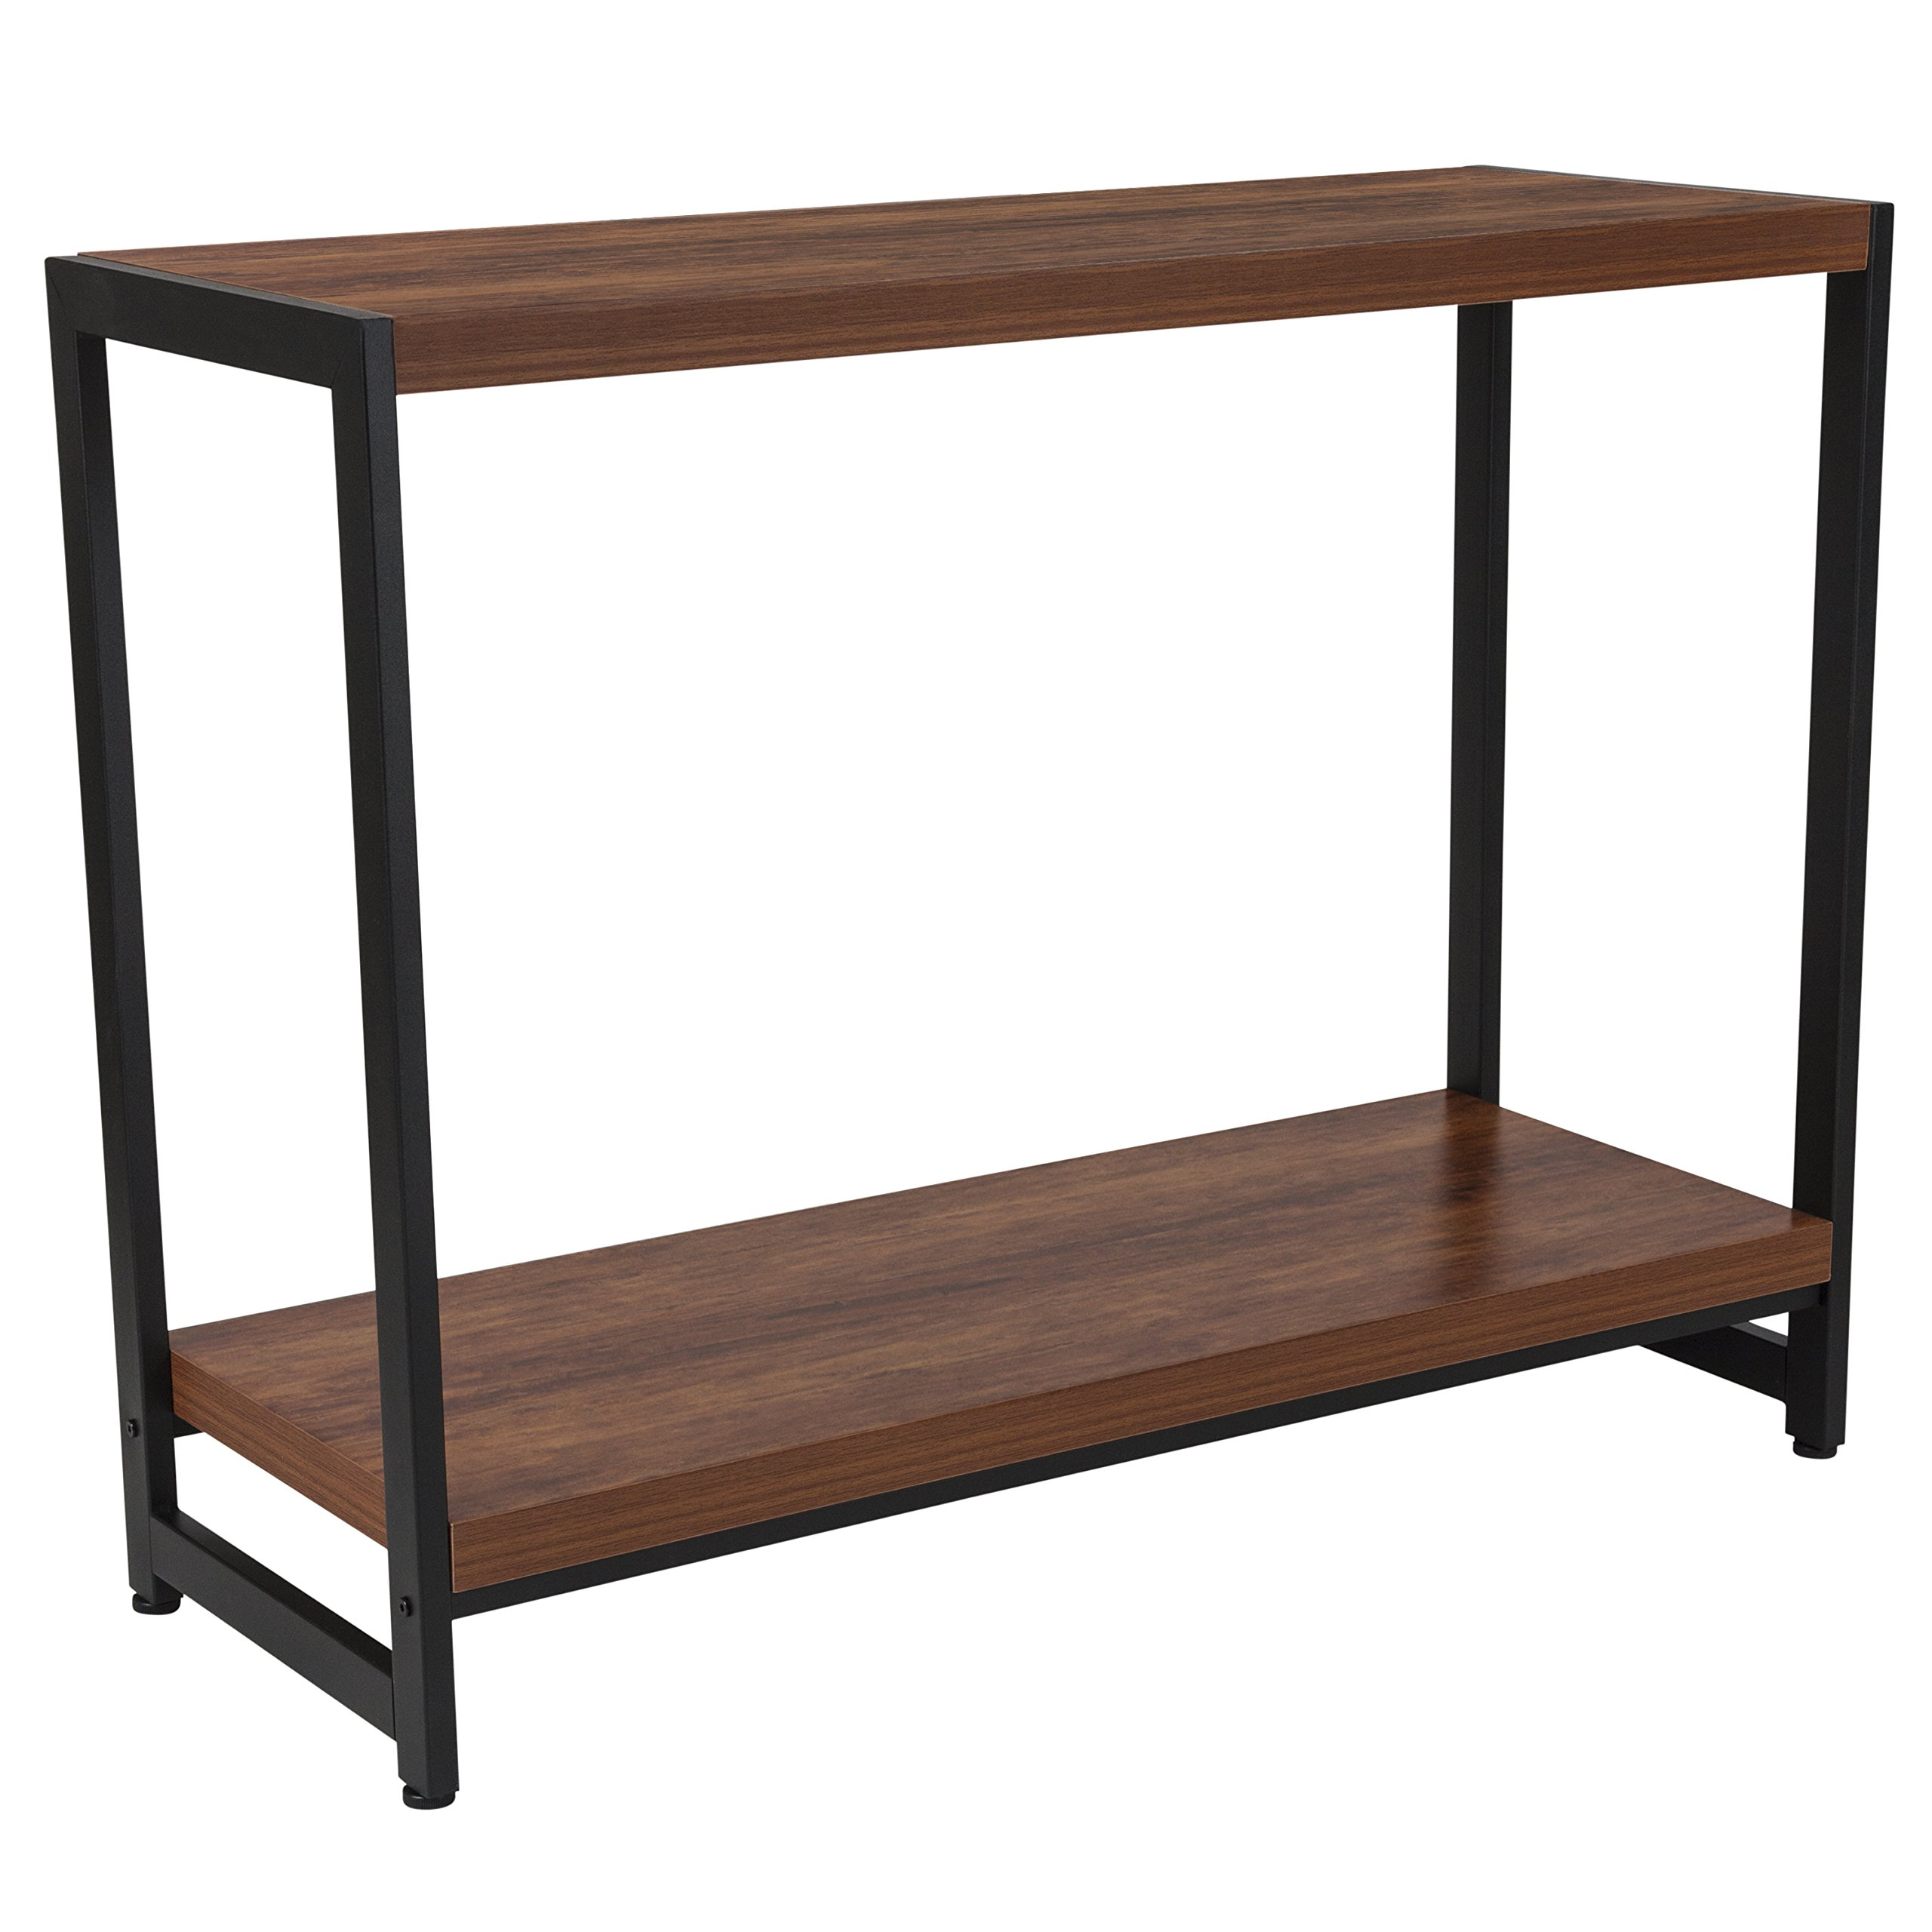 Flash Furniture Grove Hill Collection Rustic Wood Grain Finish Console Table with Black Metal Frame by Flash Furniture (Image #1)